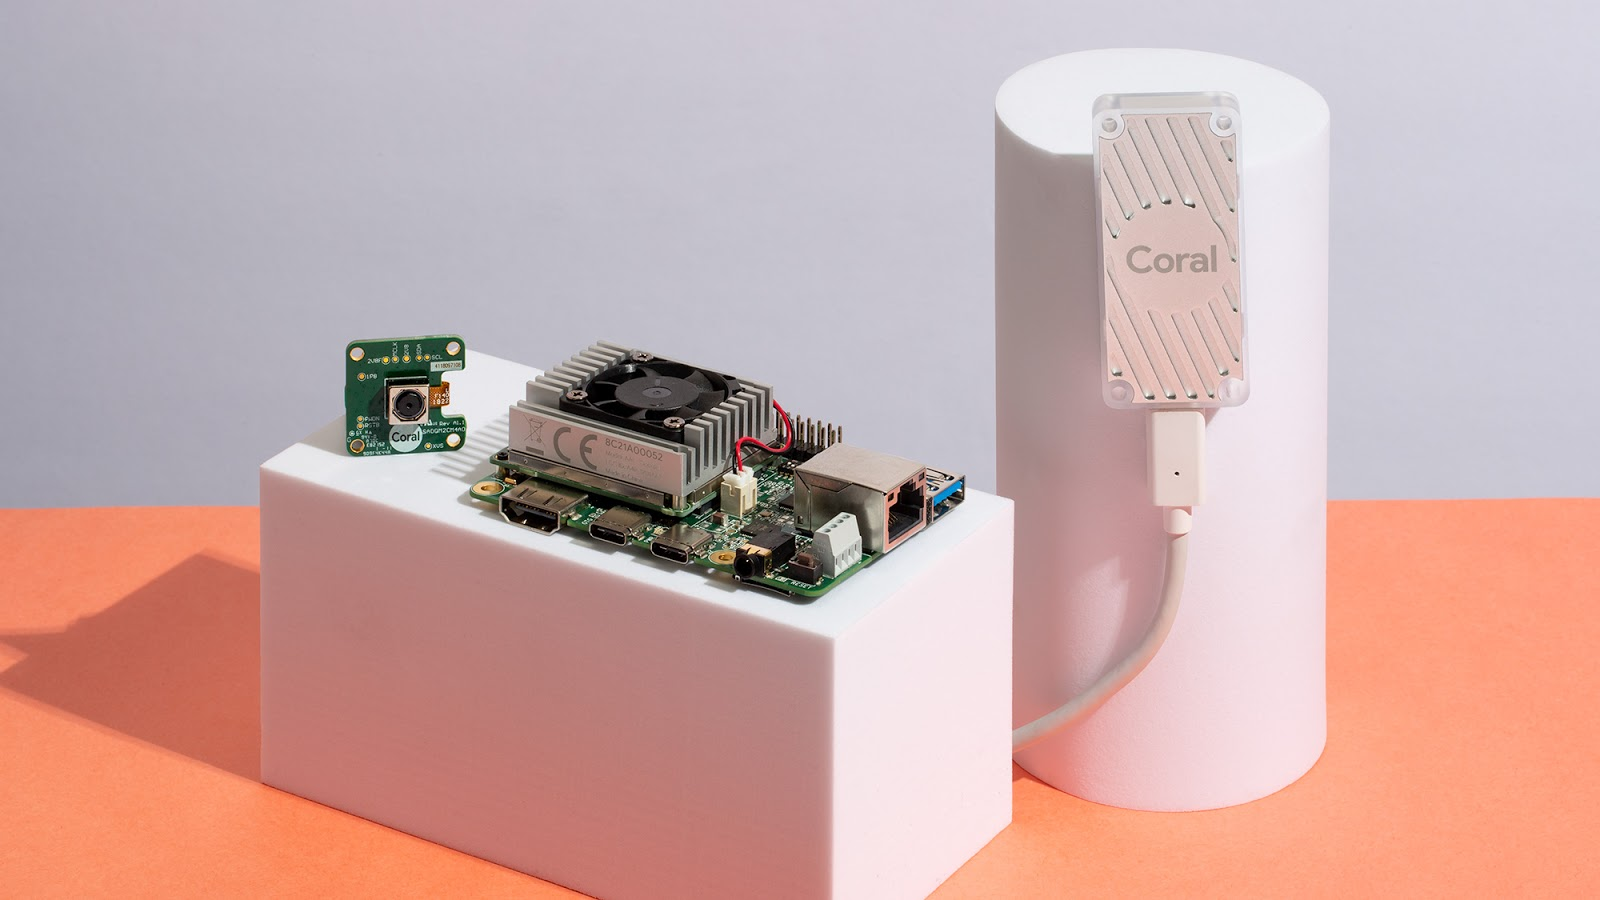 Google begins selling the $150 Coral Dev Board, a hardware kit for accelerated AI edge computing